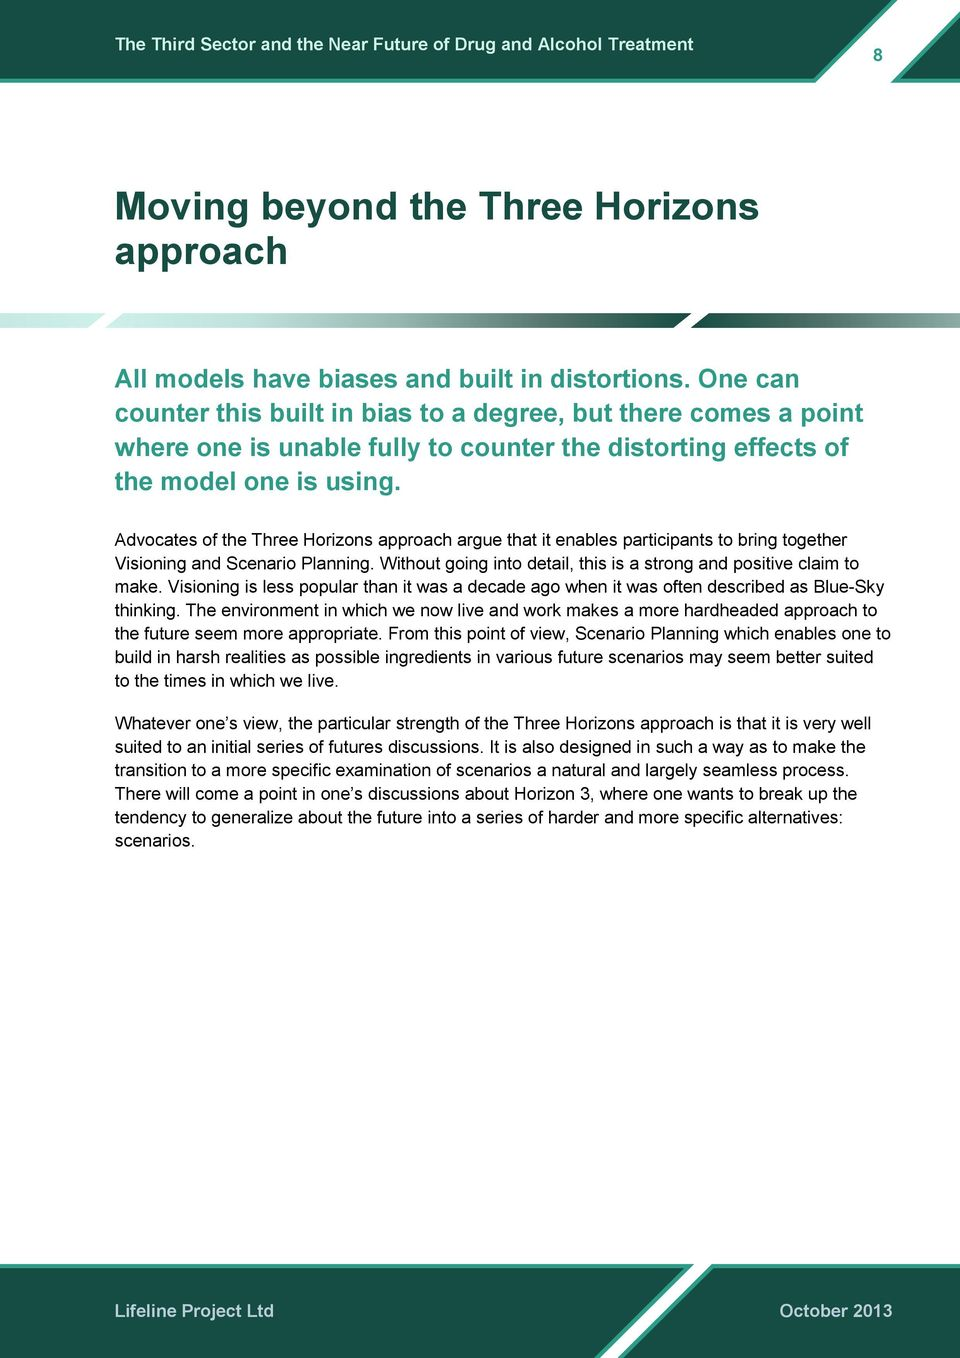 Advocates of the Three Horizons approach argue that it enables participants to bring together Visioning and Scenario Planning. Without going into detail, this is a strong and positive claim to make.